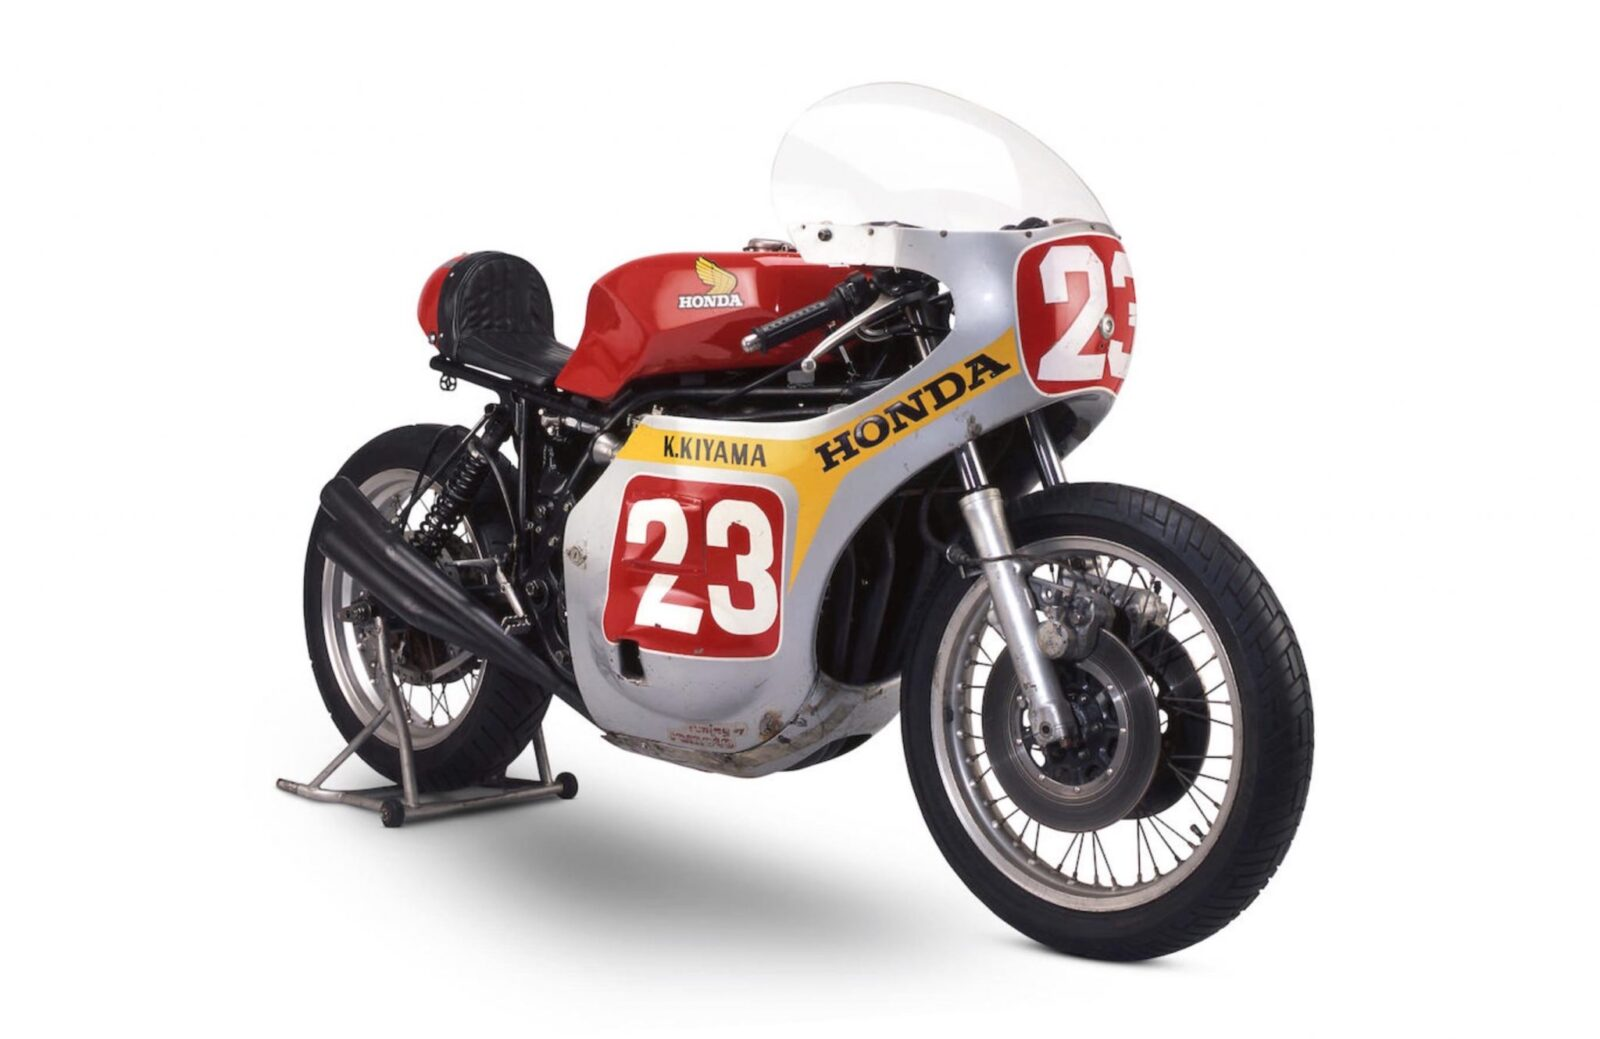 Honda CB500R 650cc Racing Motorcycle 1600x1039 - Honda Research & Development CB500R Racer